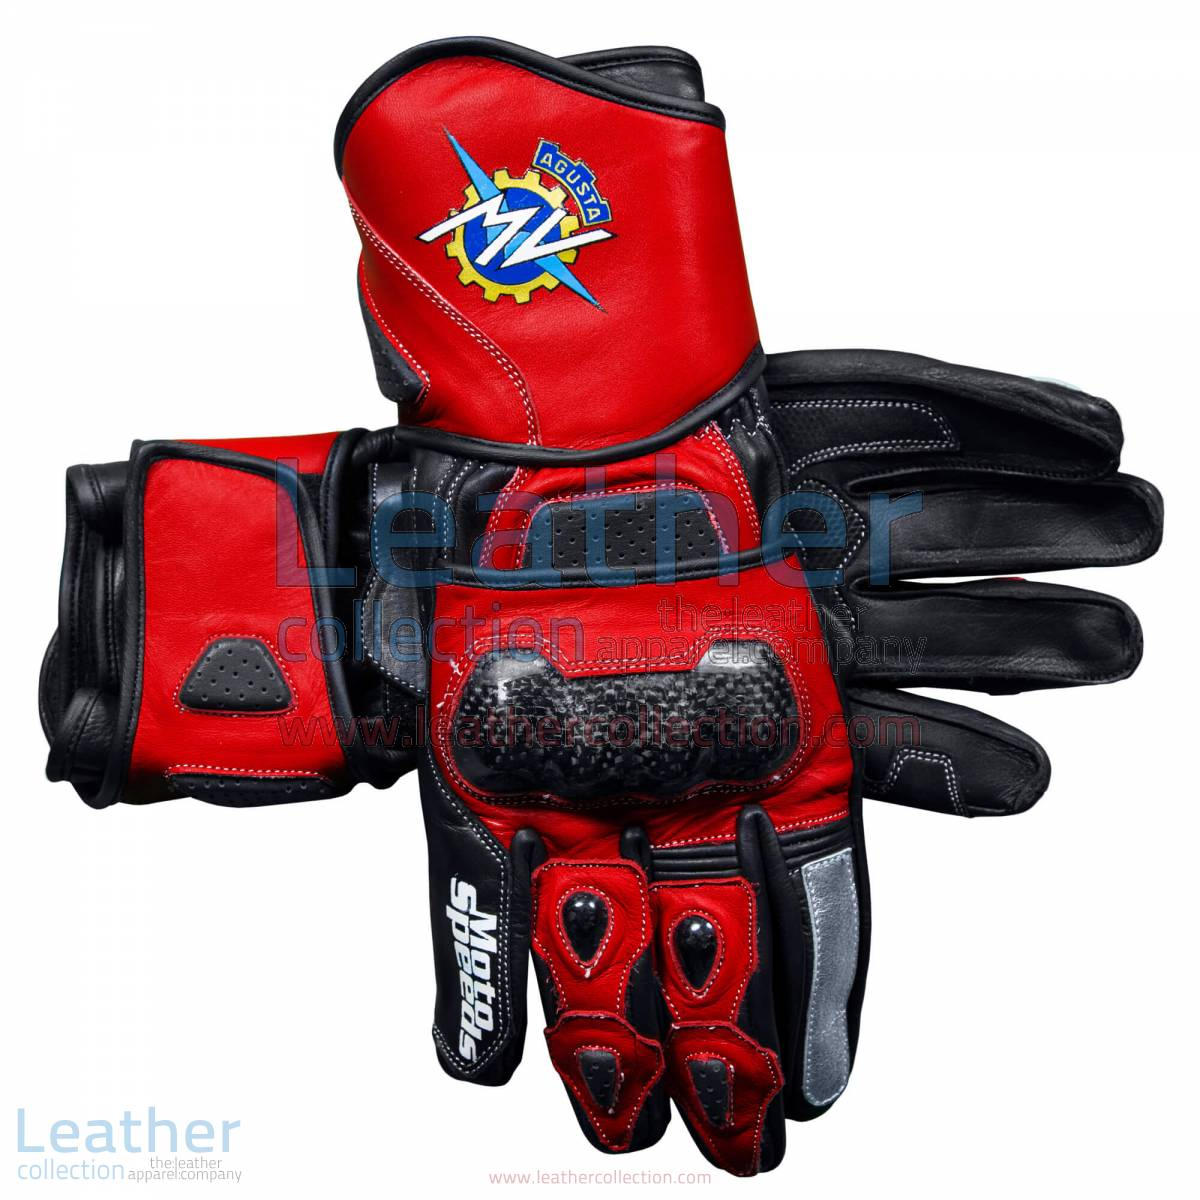 MV Agusta 2017 Leather Motorcycle Gloves | MV Agusta gloves,MV Agusta 2017 Leather Motorcycle Gloves